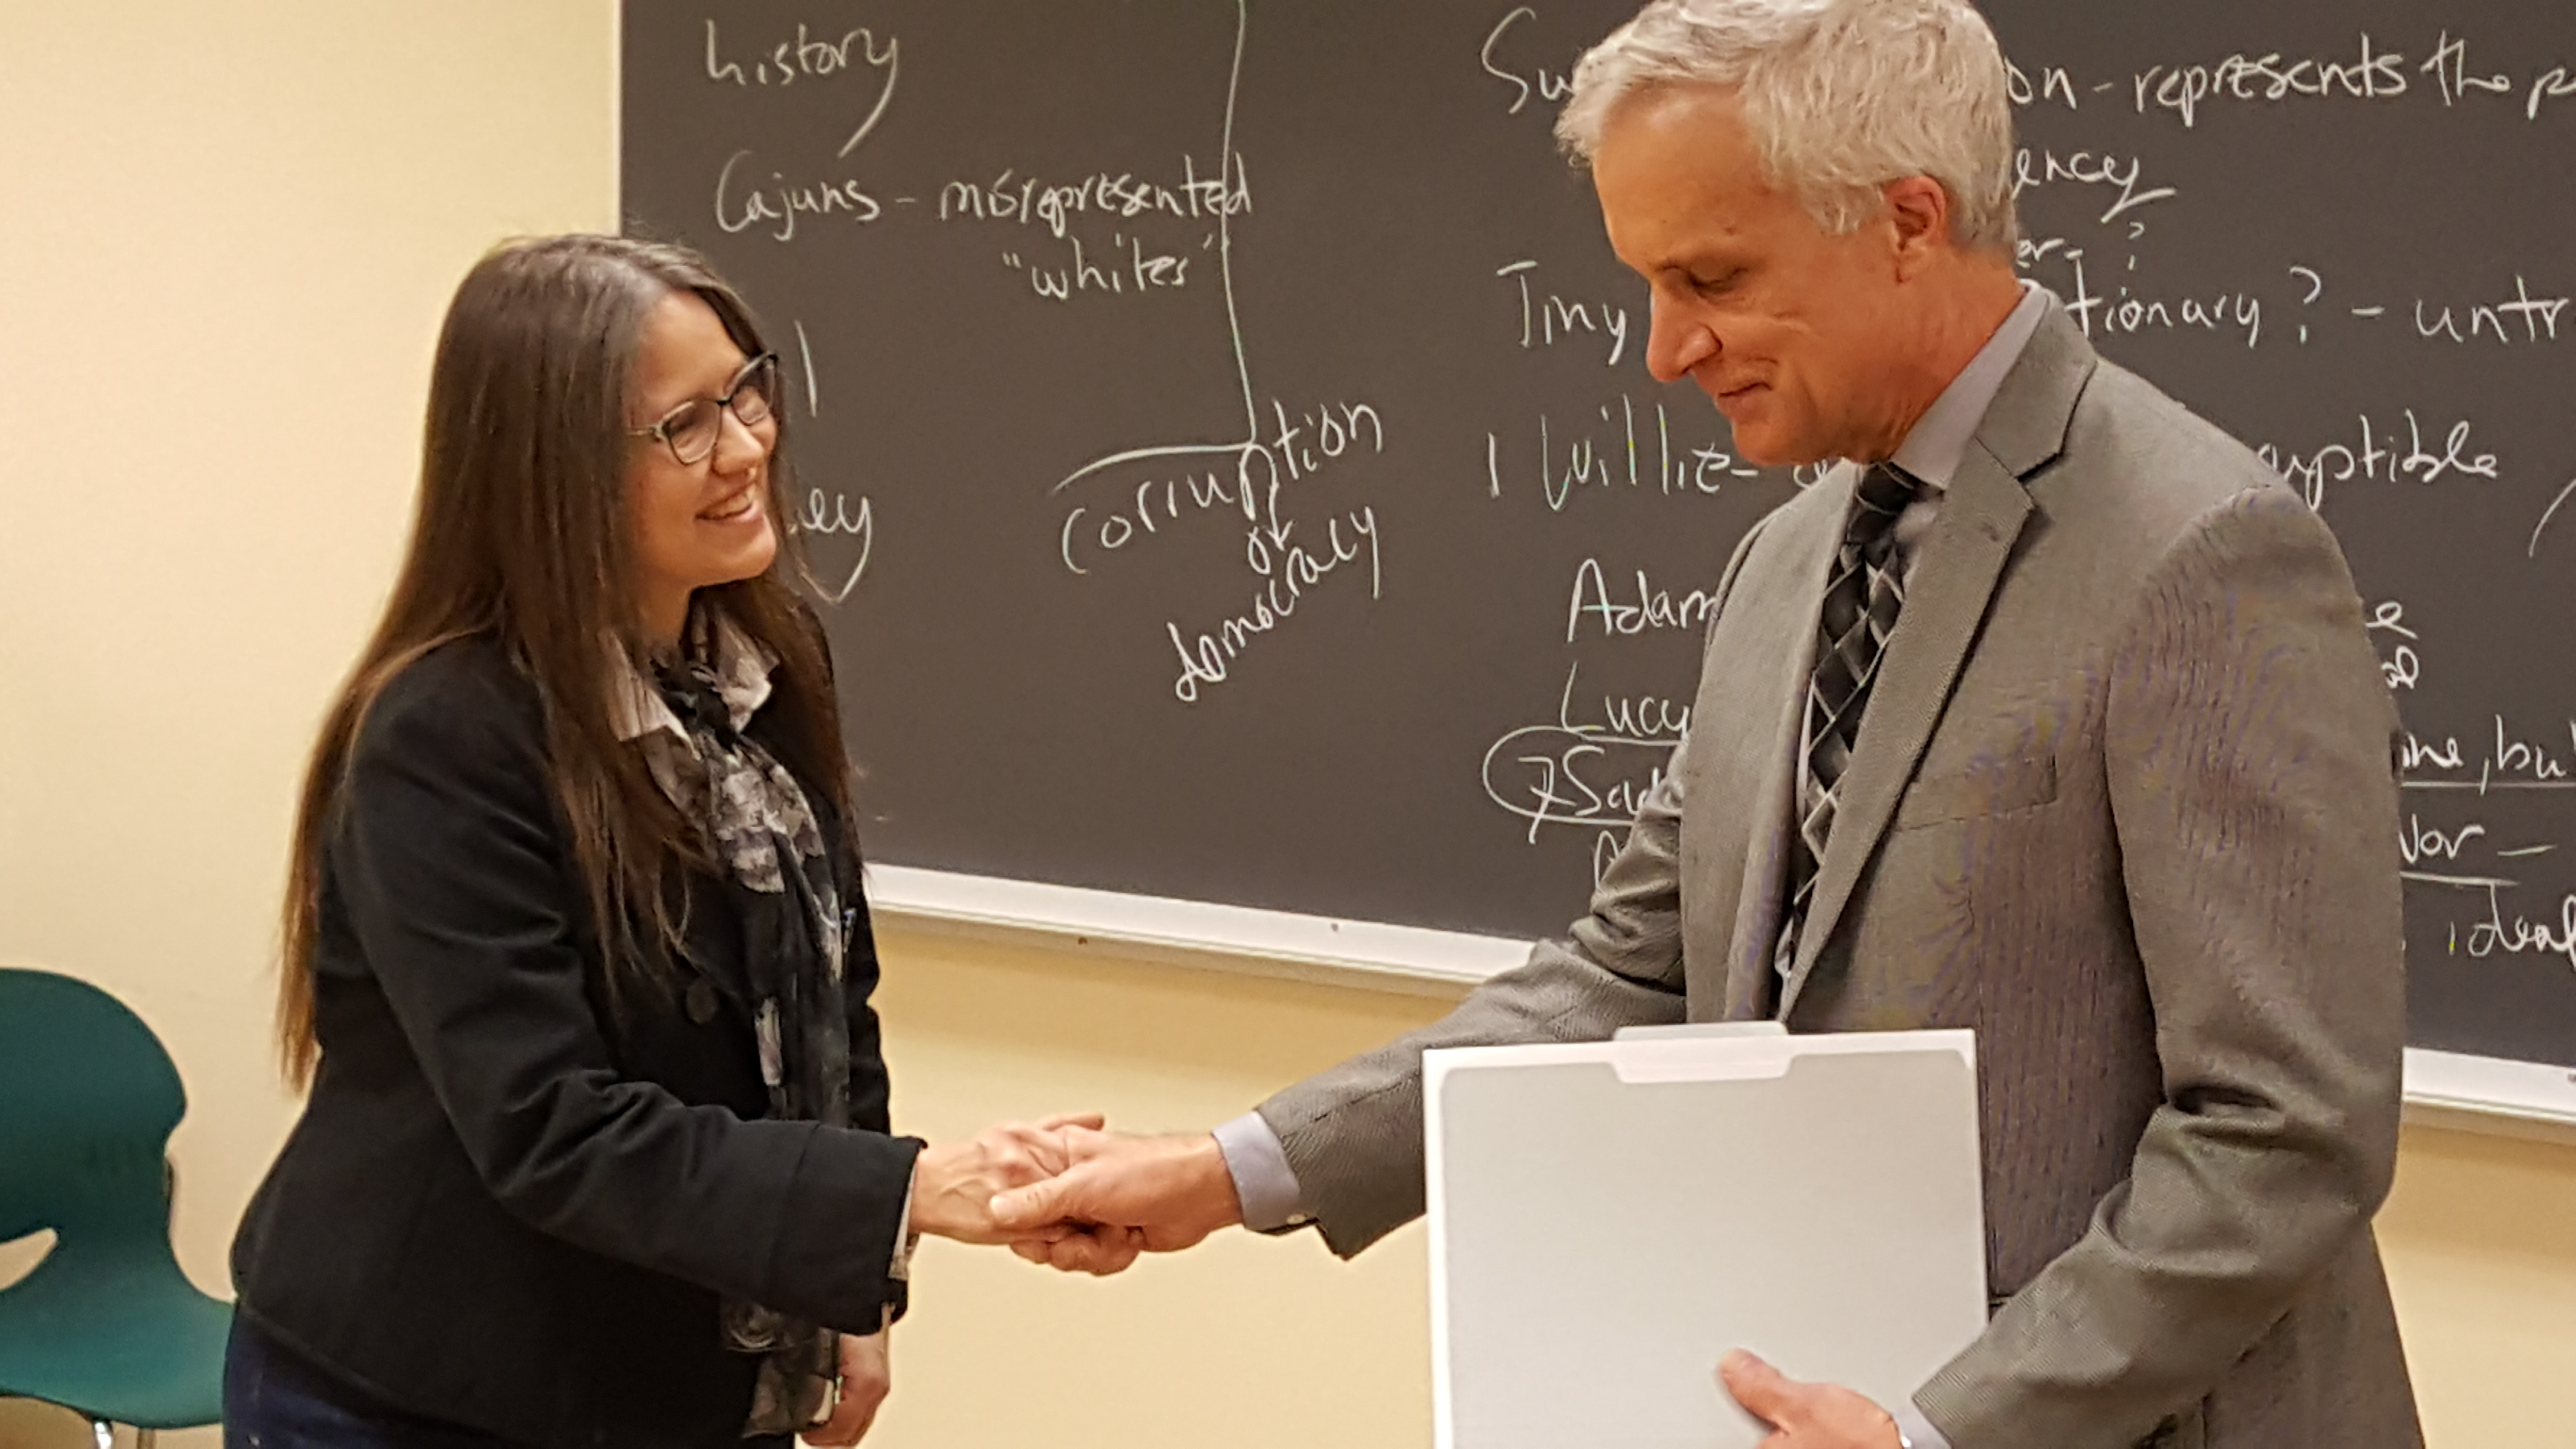 Crosby earns prestigious Arts & Sciences award for inspiring students